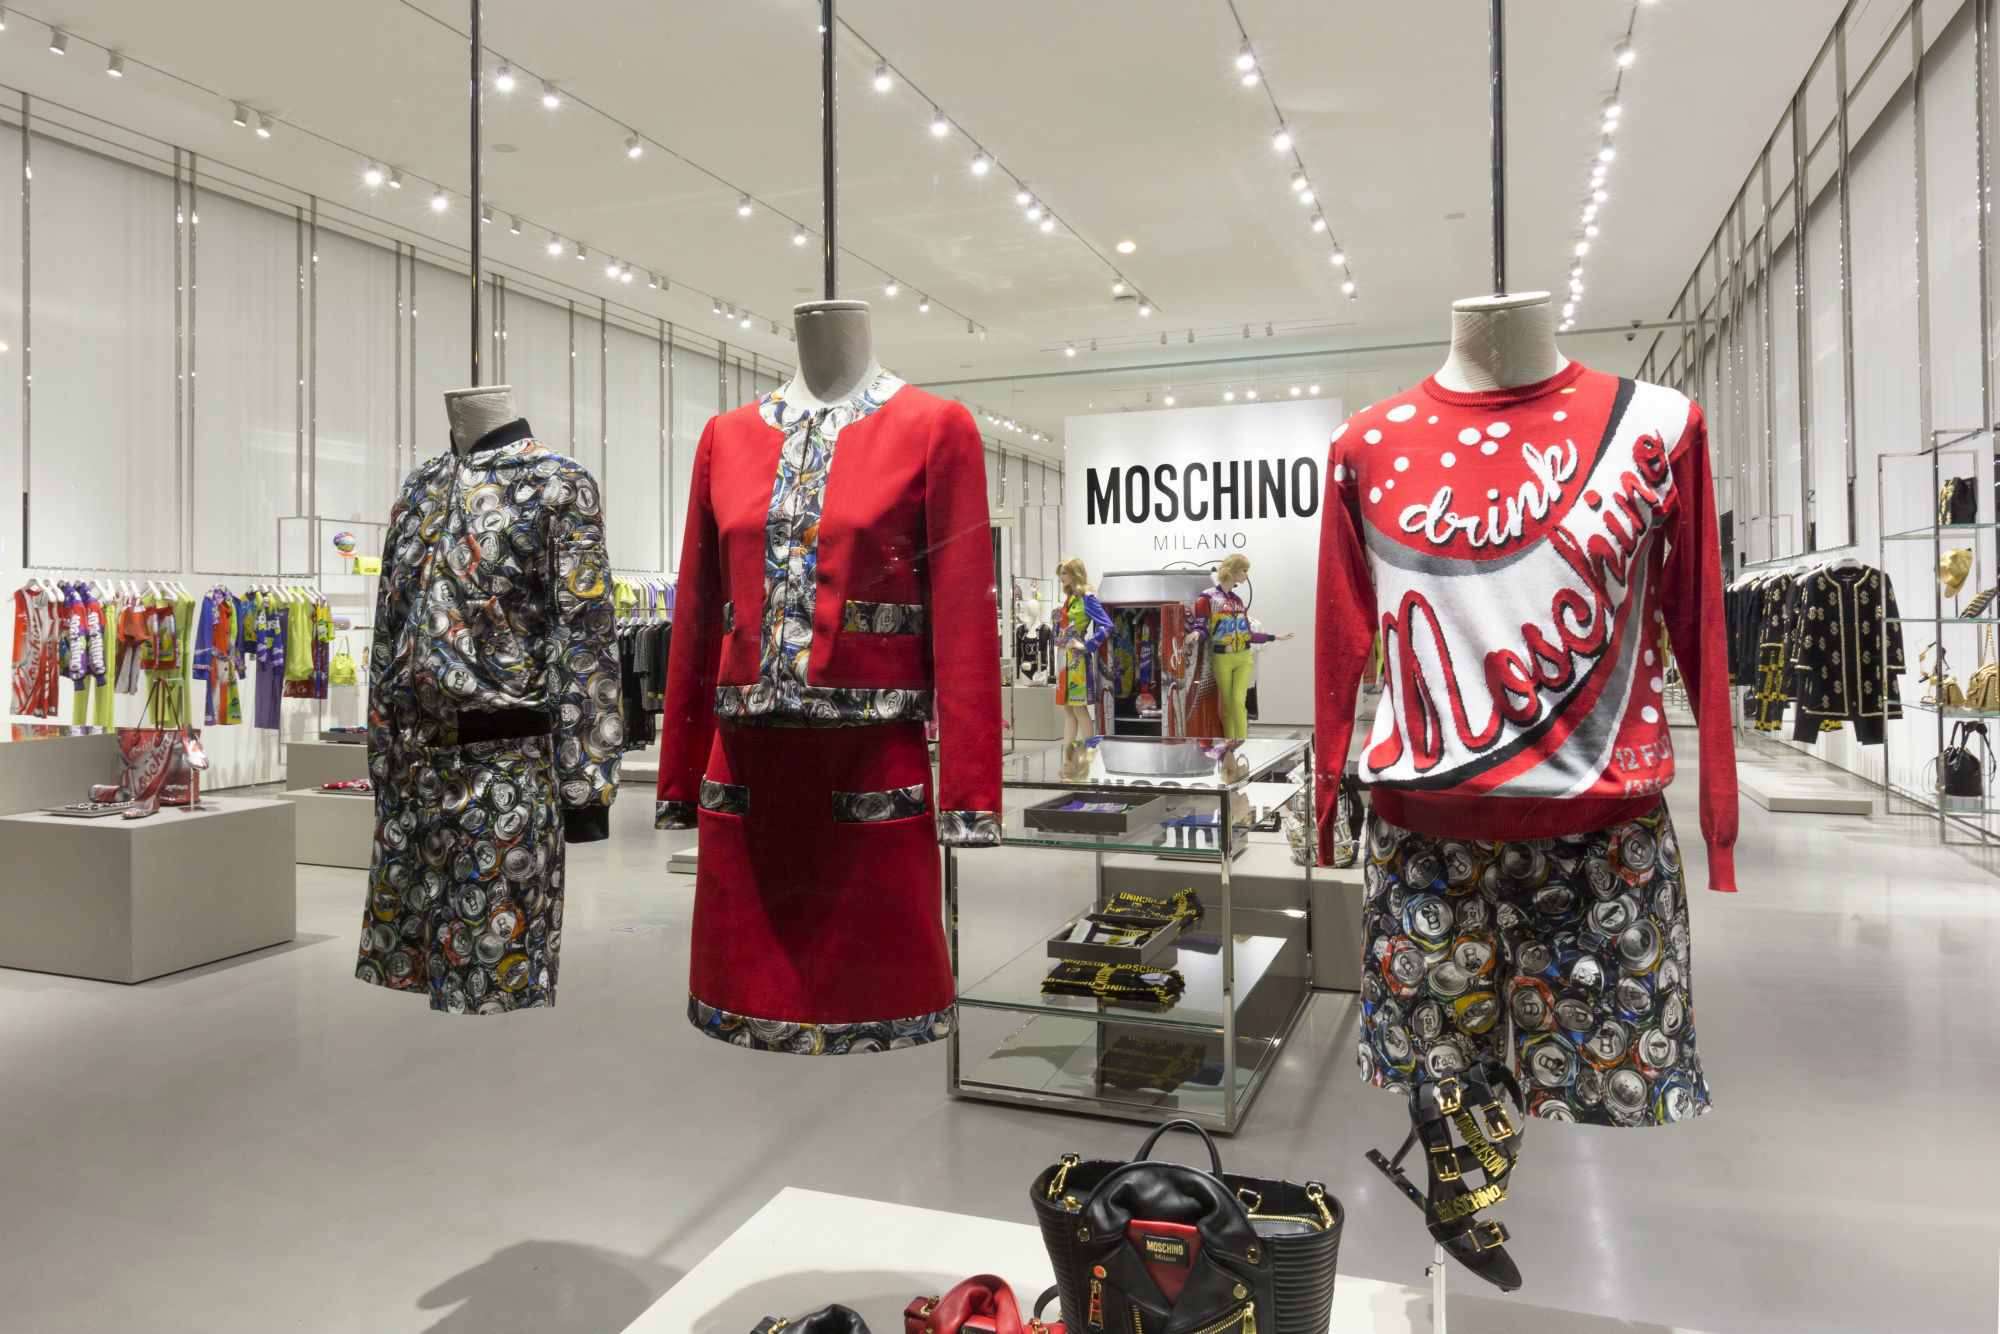 83a9318943b43 Scott won't have much time to hang in the boutique's VIP room or 800-square  foot terrace, however; he's slated to open a new Moschino location in Milan  this ...